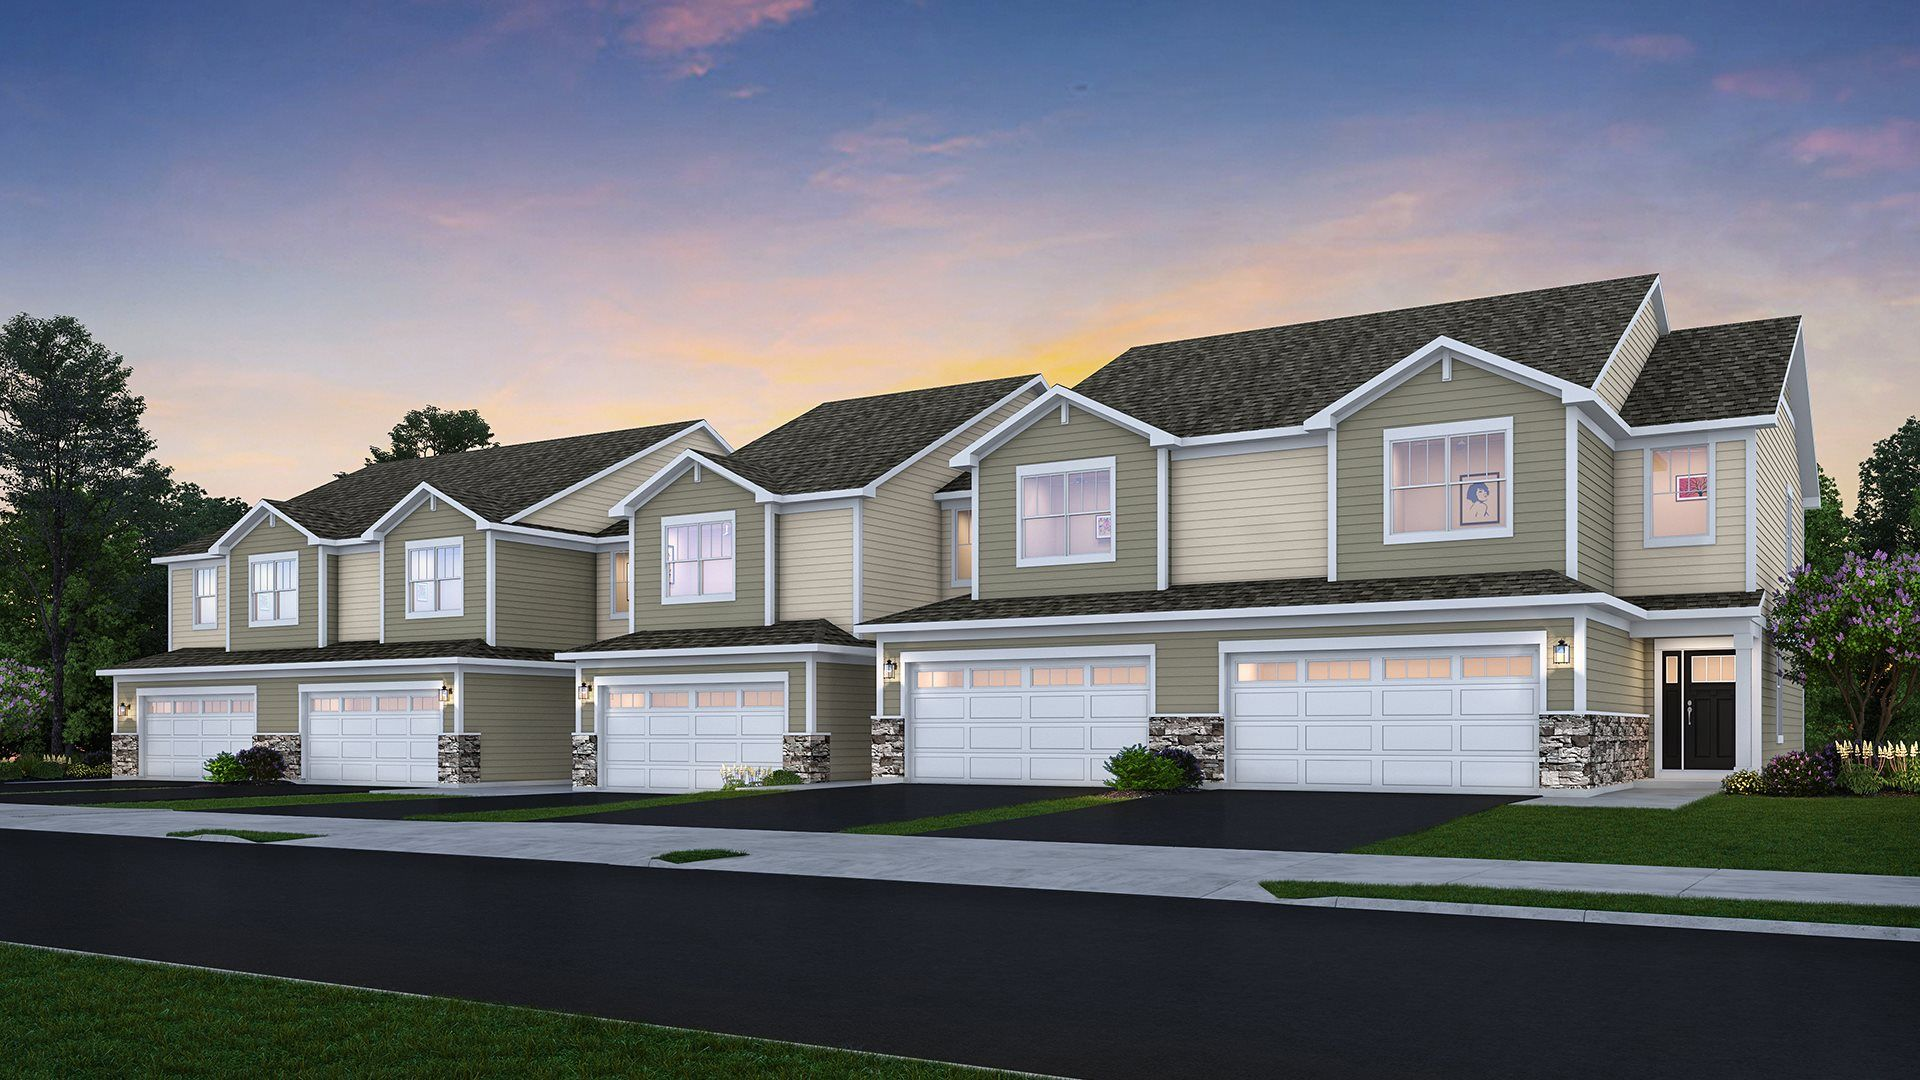 New Townhomes for sale in South Elgin, IL by Lennar Homes